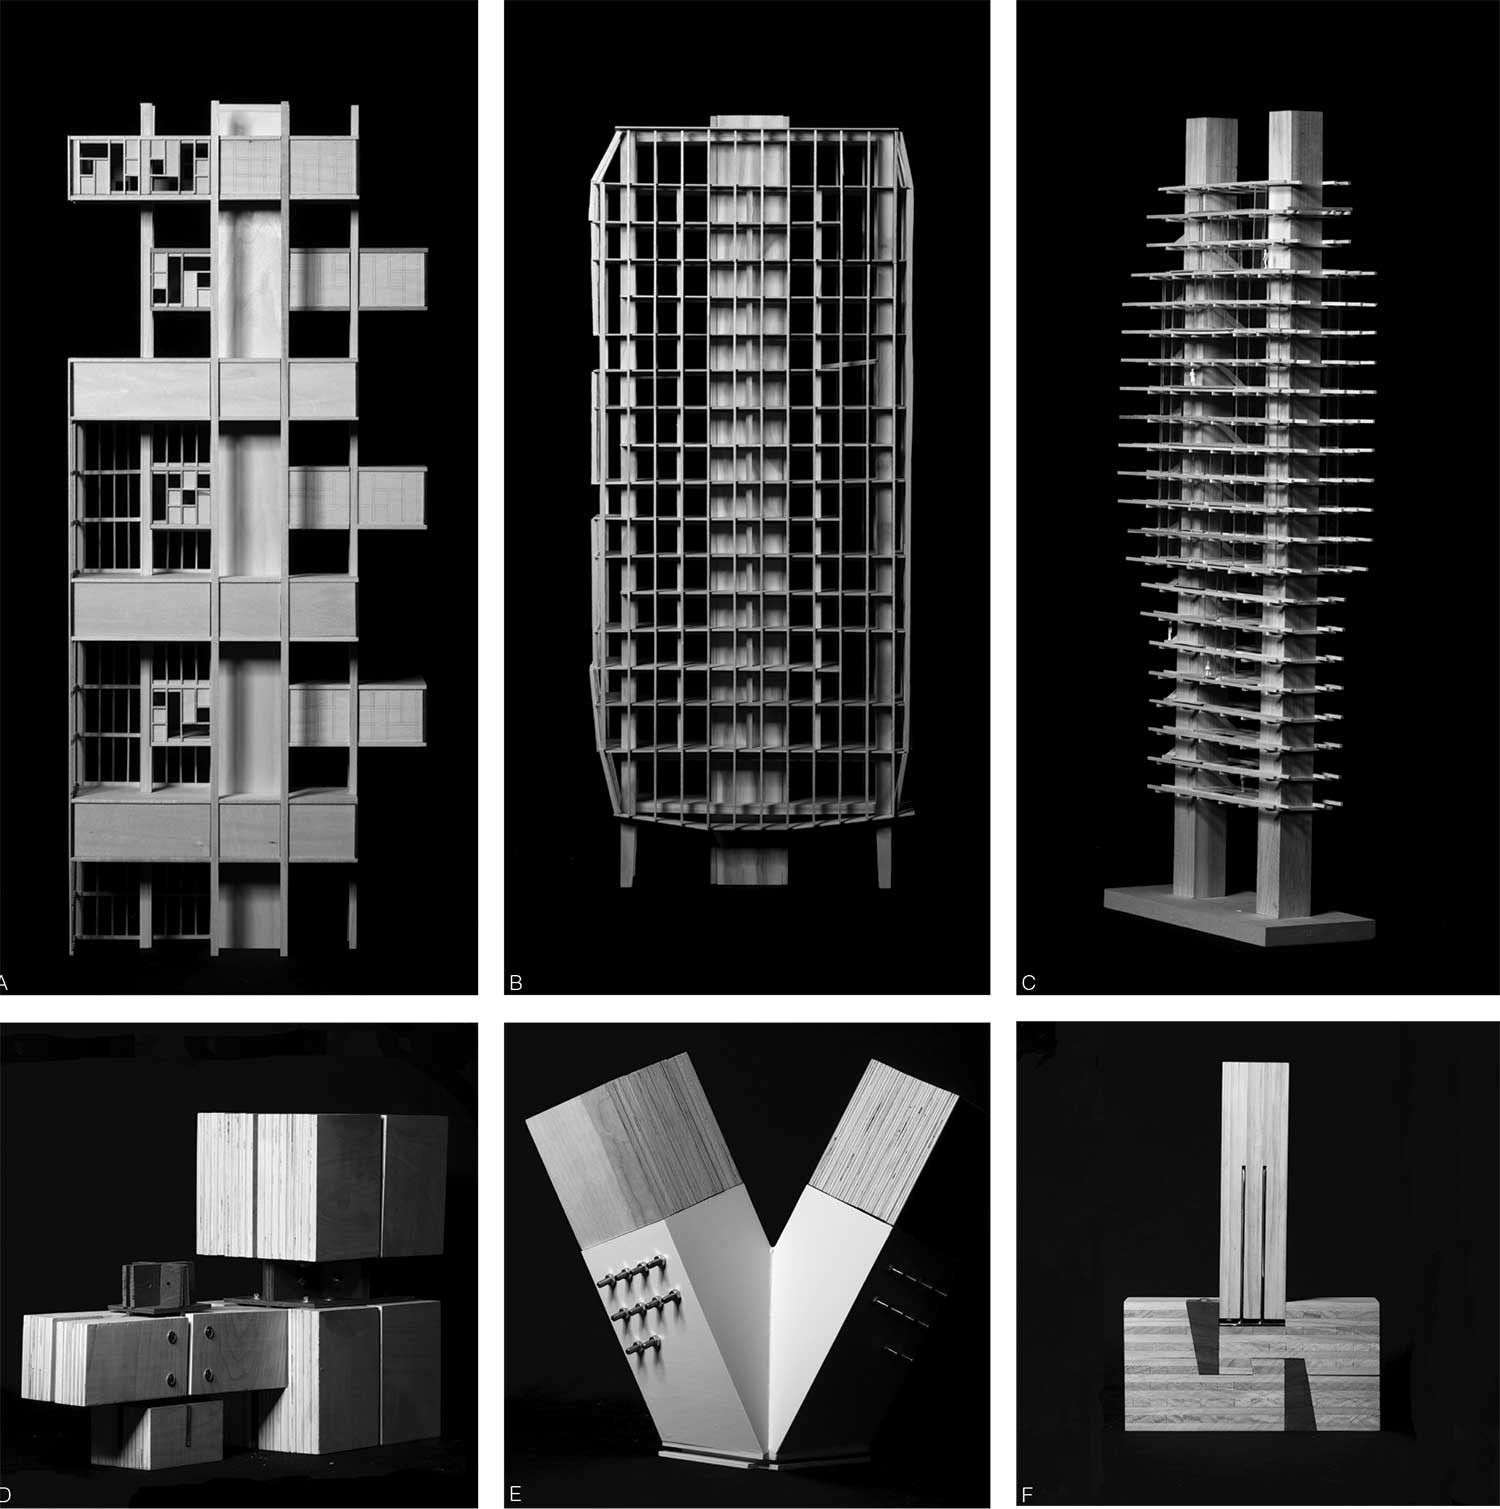 6 small images in 1 - b/w photos of wood architecture models by students in studio 4A